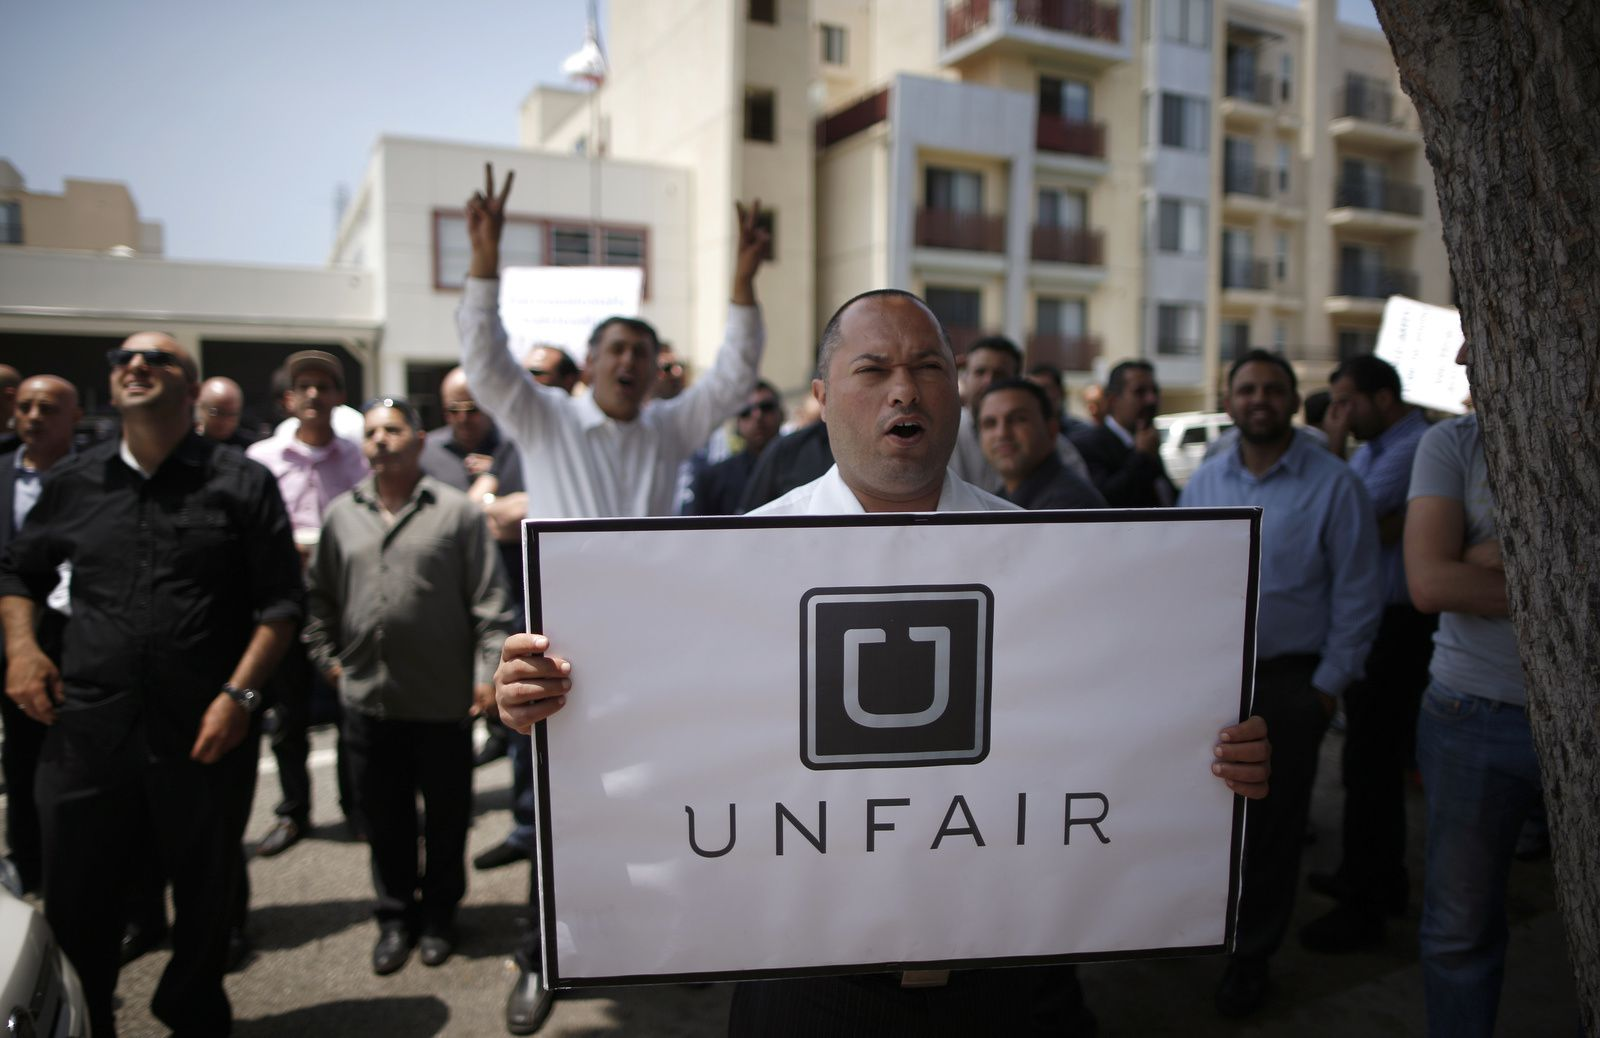 http://blogs.reuters.com/great-debate/files/2014/07/uber-protestors.jpg